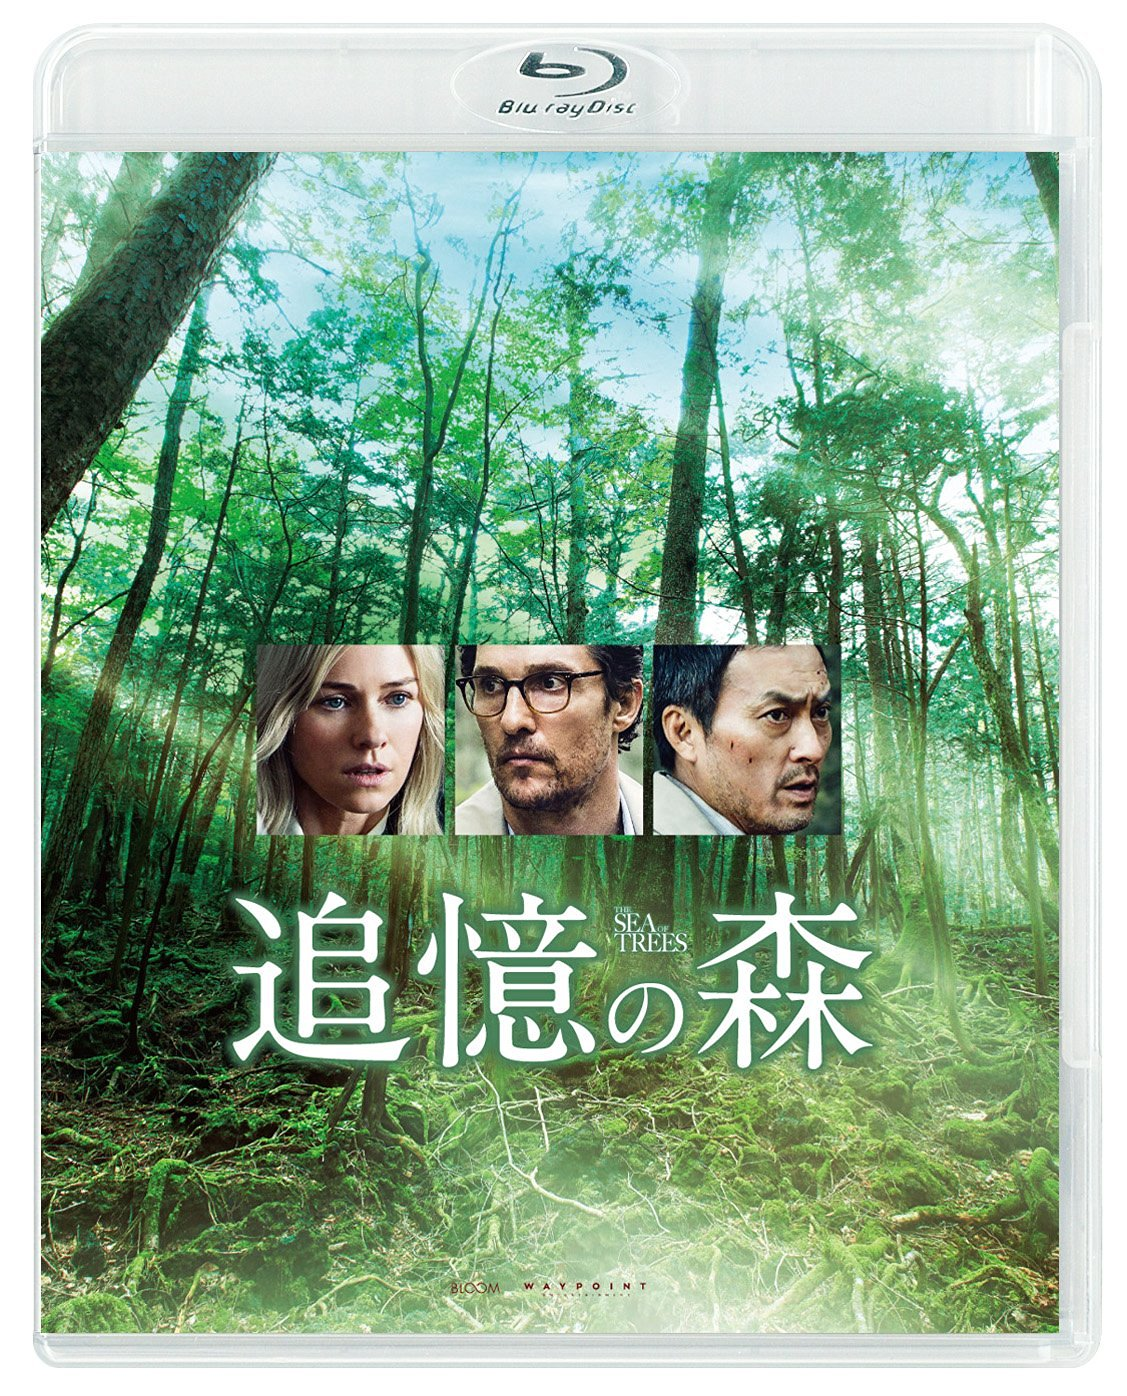 [MOVIES] 追憶の森 / THE SEA OF TREES (2015)